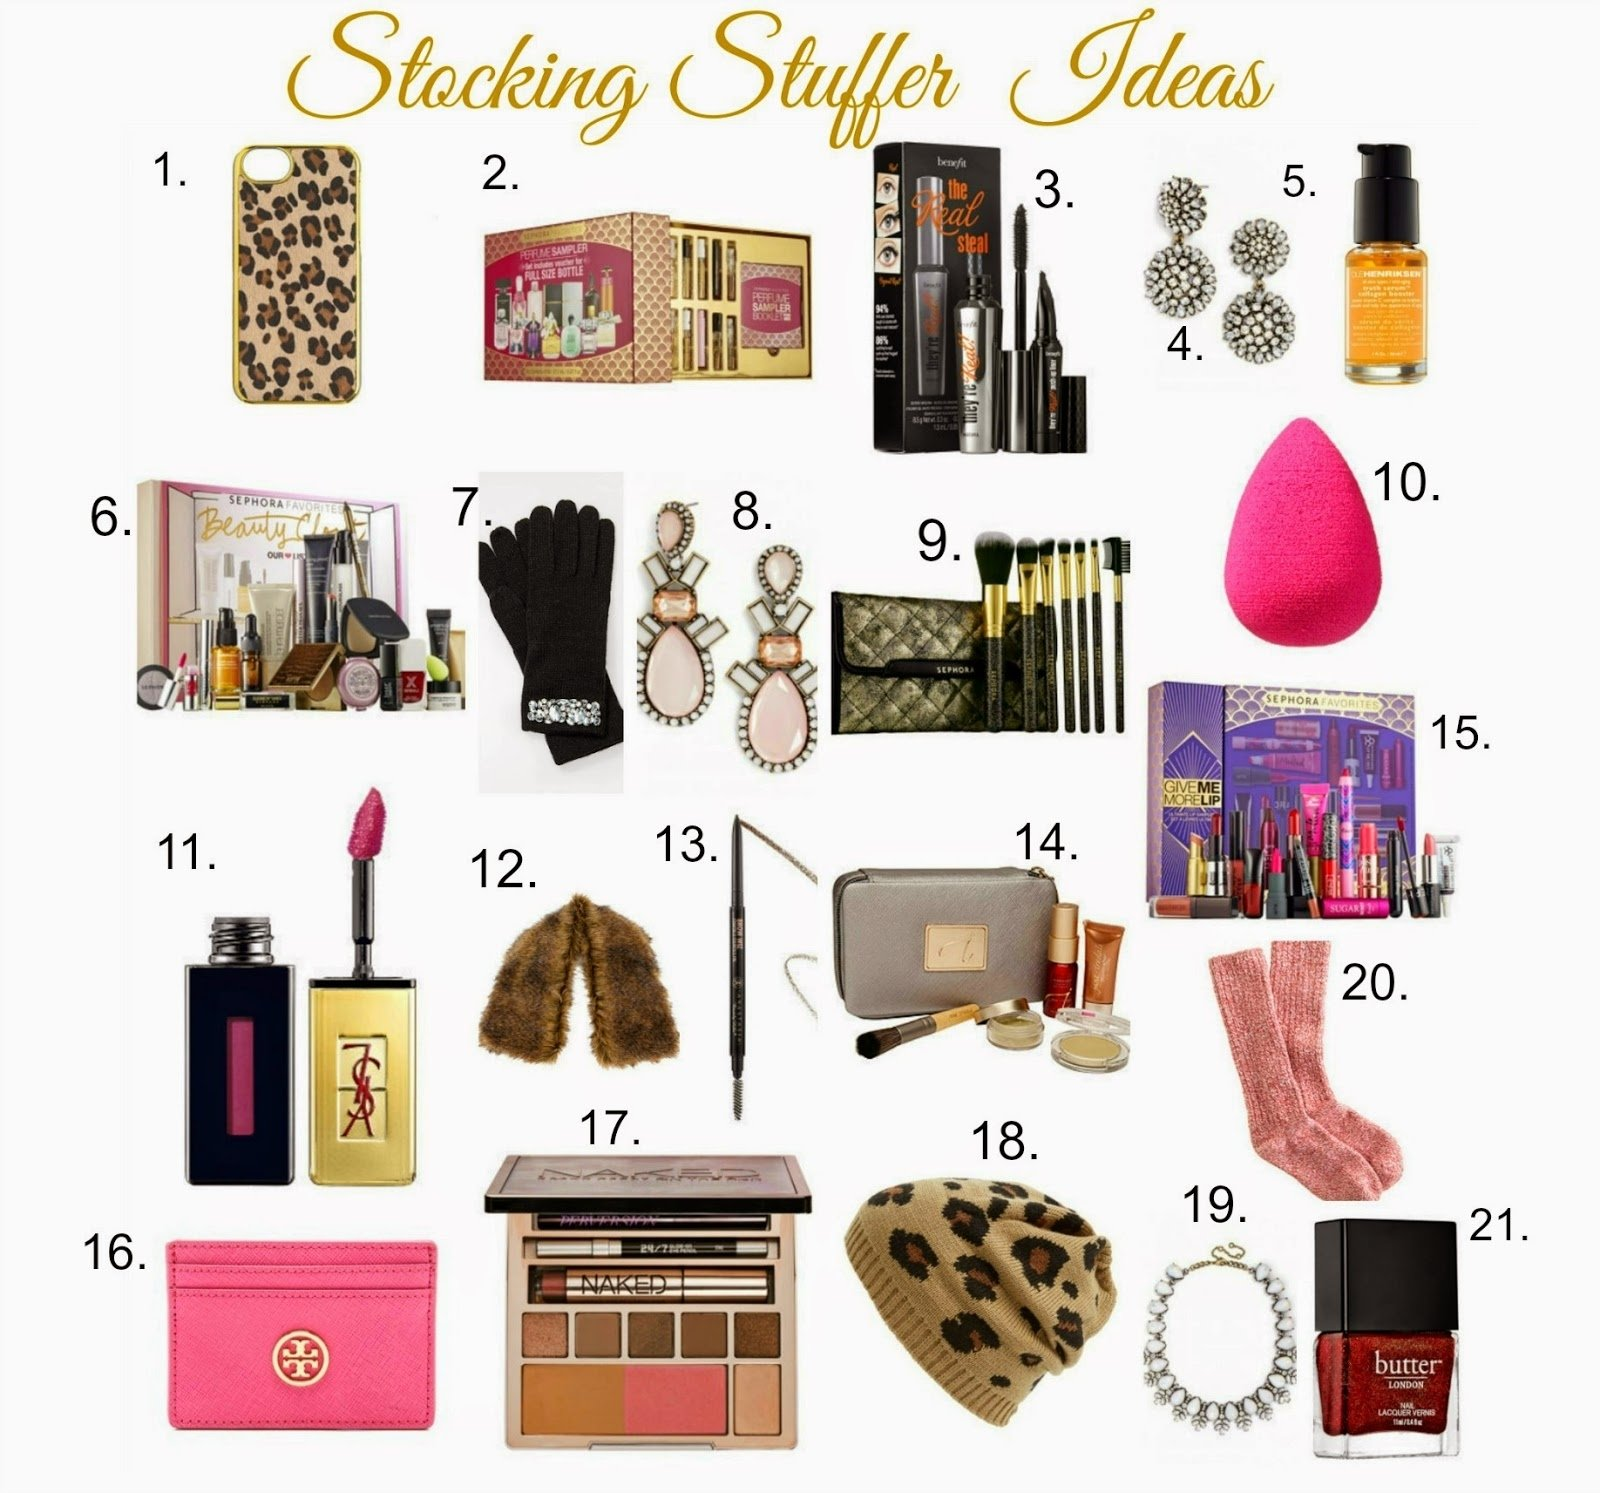 10 Trendy Stocking Stuffers Ideas For Women stocking stuffer ideas for her kiss me darling 2020